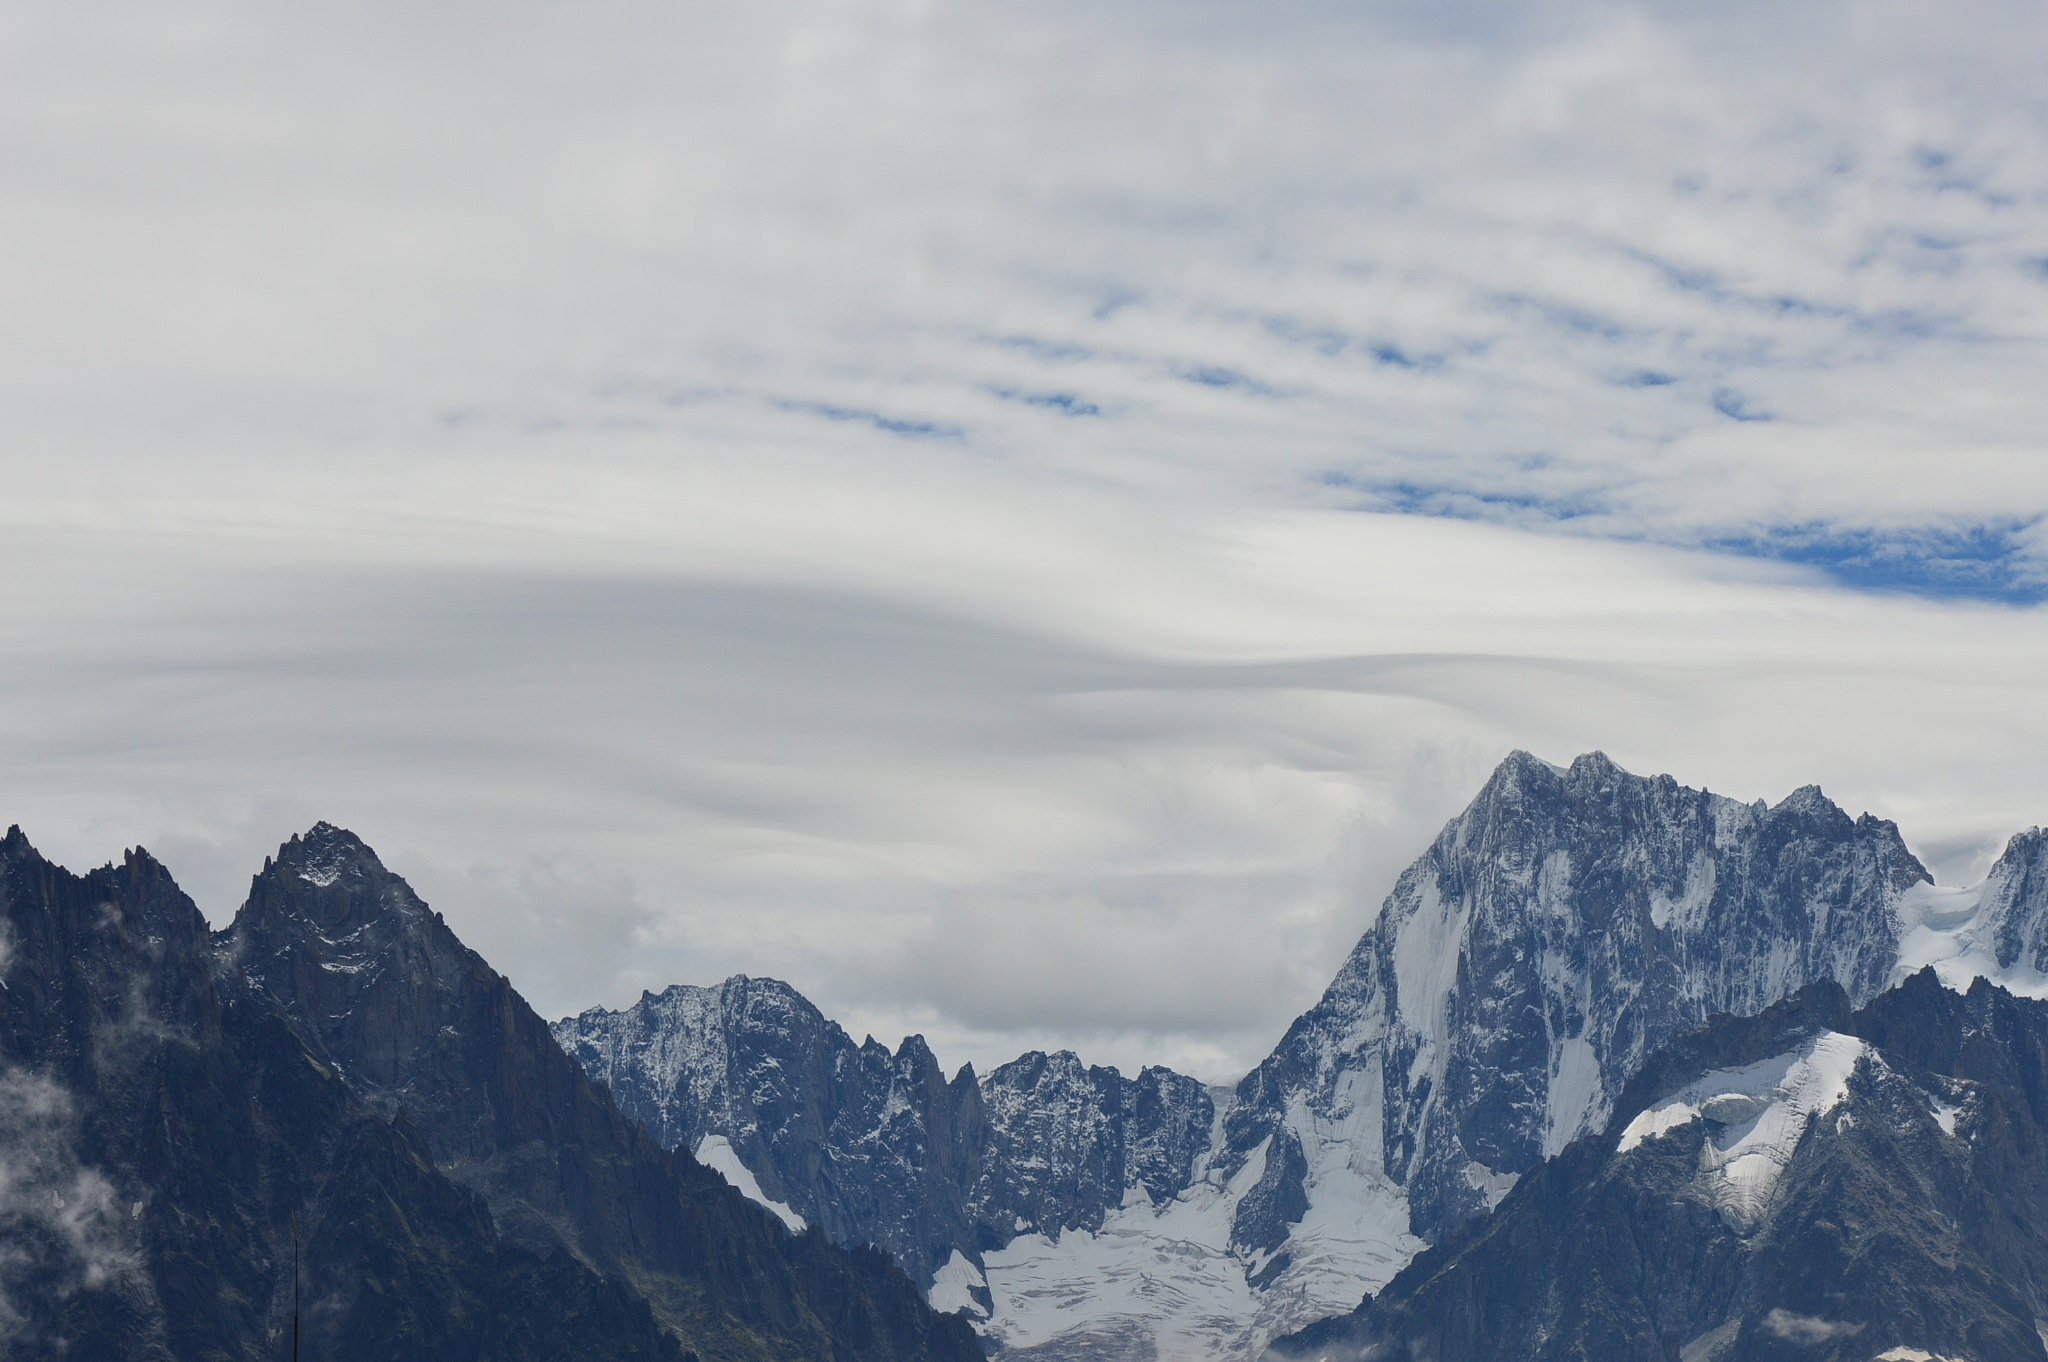 Mountains by Roanne Frerejean